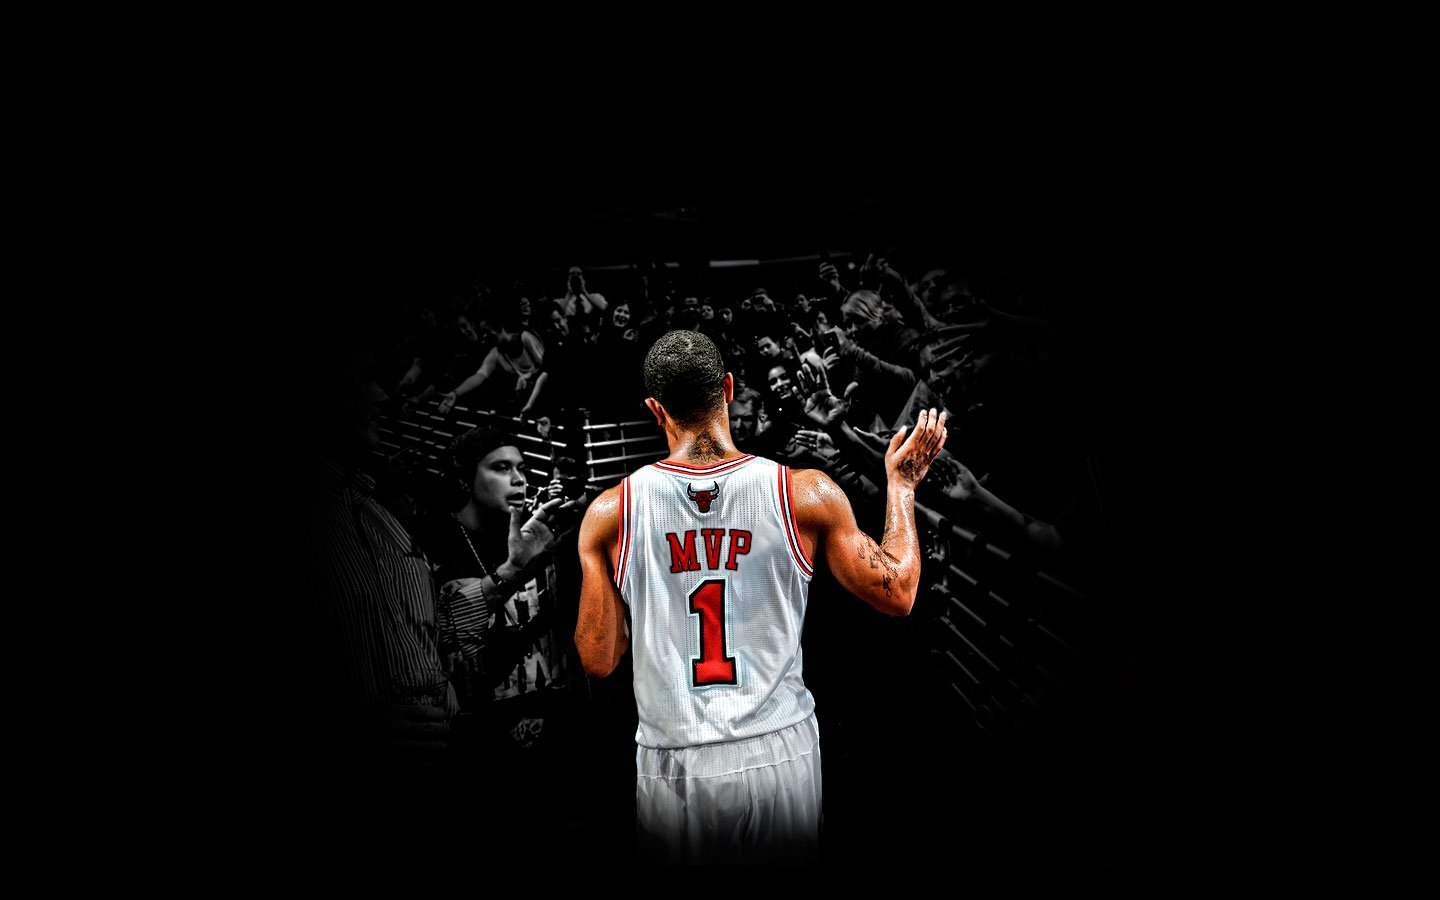 Derrick Rose wallpaper 1440x900 73278 1440x900